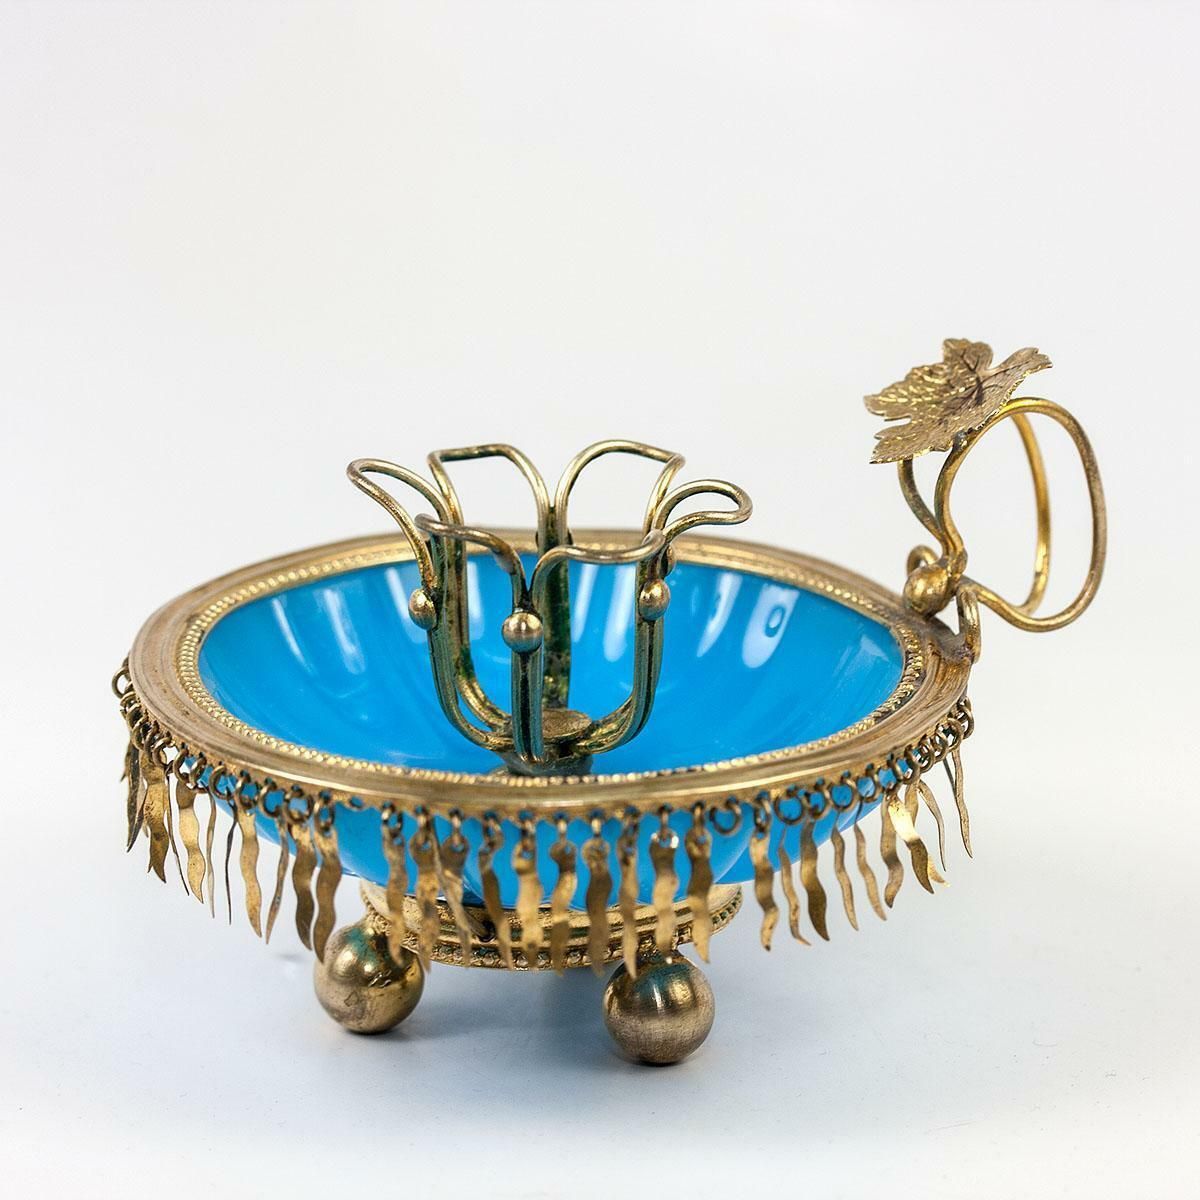 RARE Antique French Blue Opaline Candle Holder, Candlestick, Fringed Gilt Brass